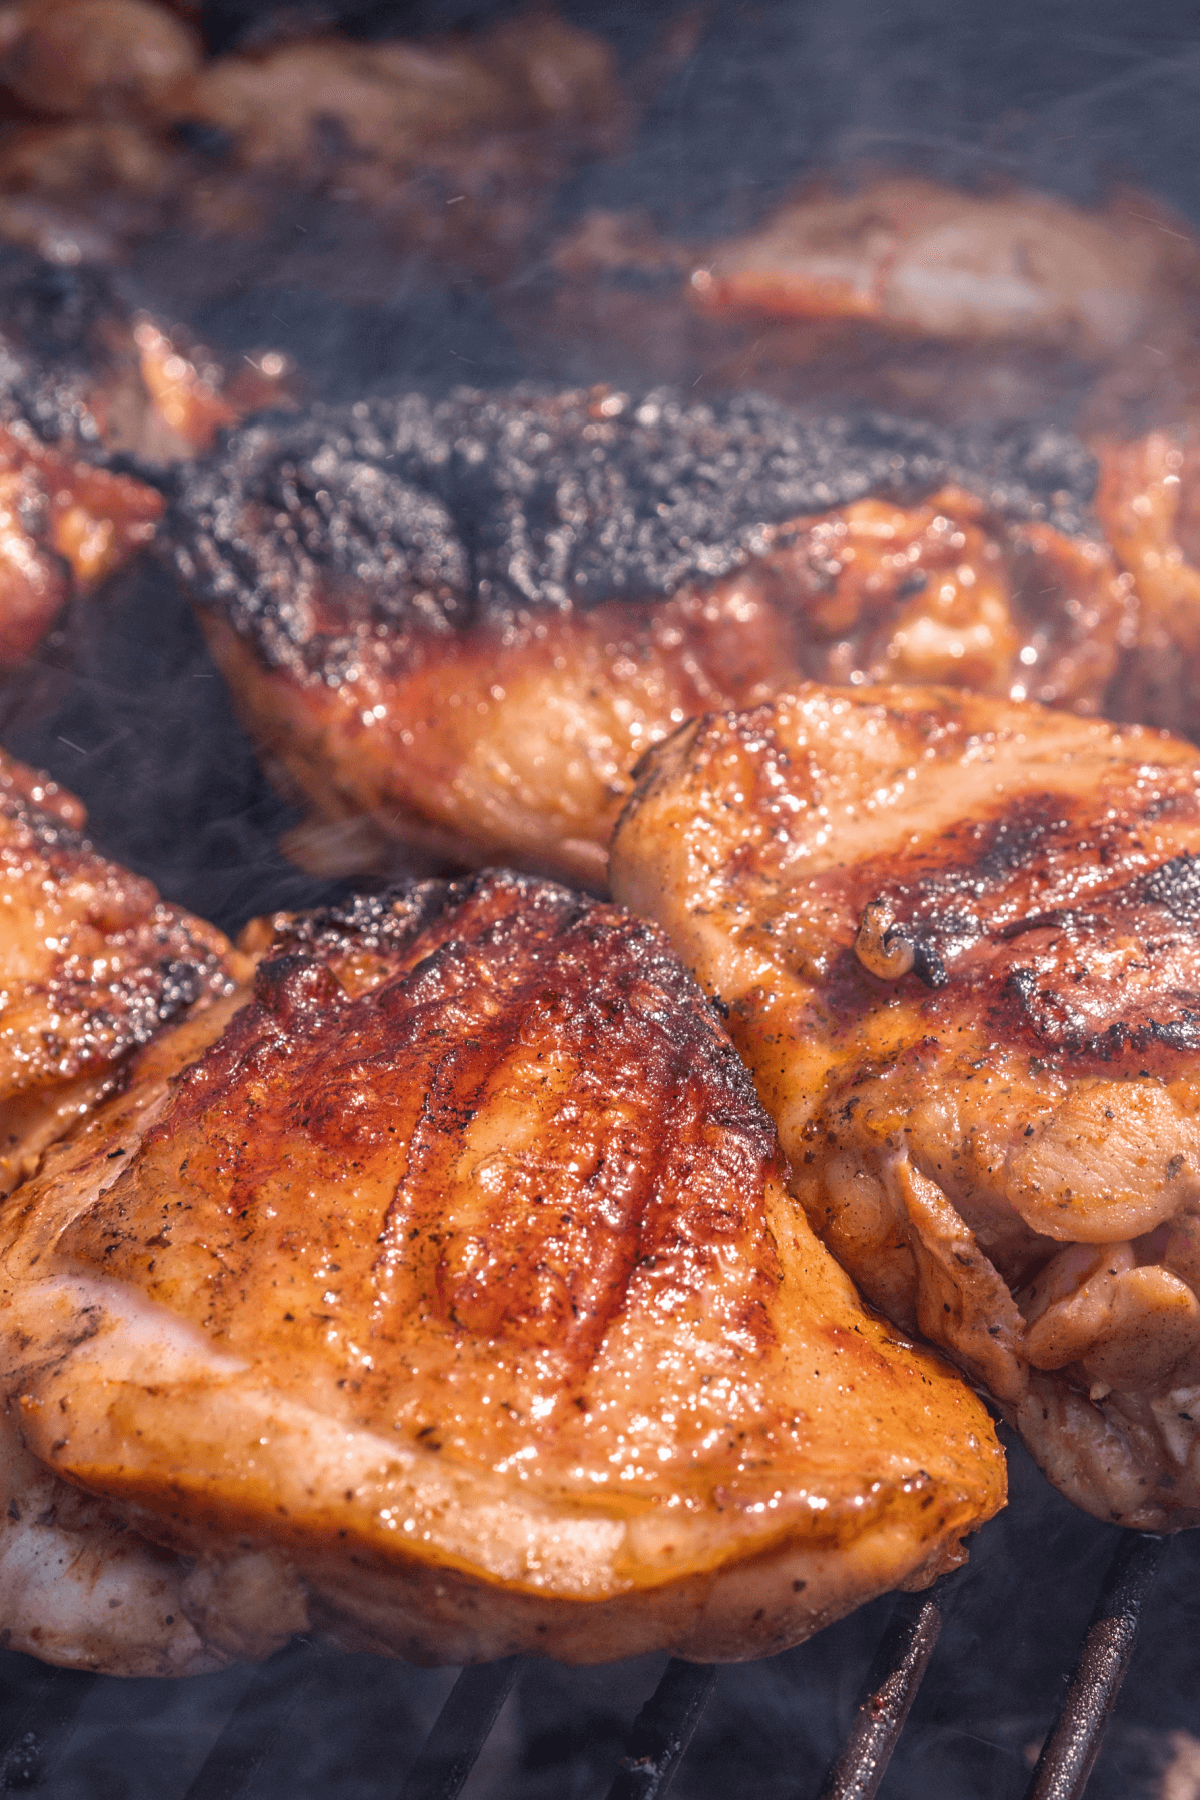 Marinated chicken thighs on grill.